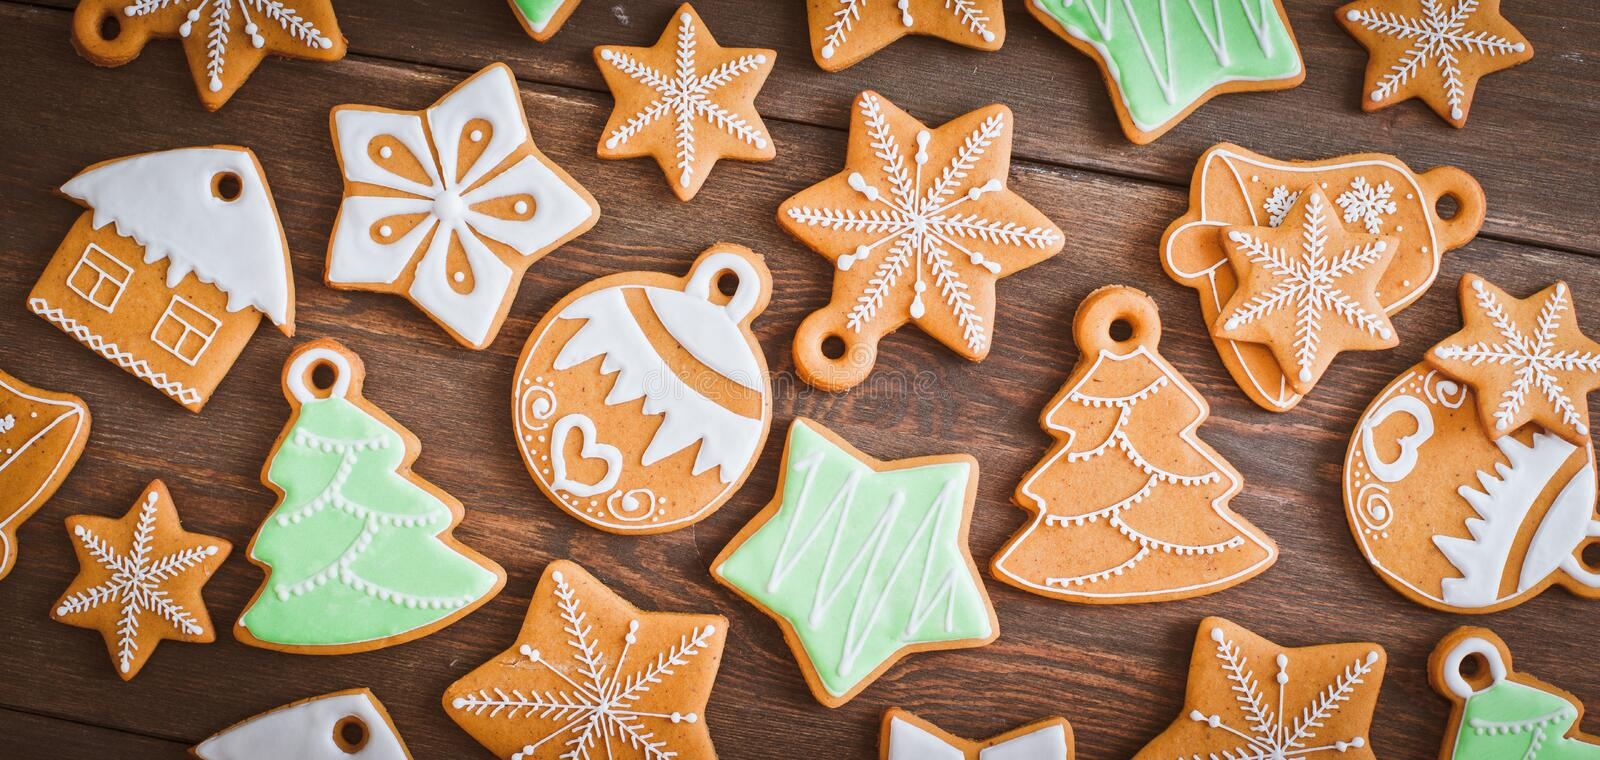 Christmas homemade gingerbread house cookie wooden background royalty free stock photography